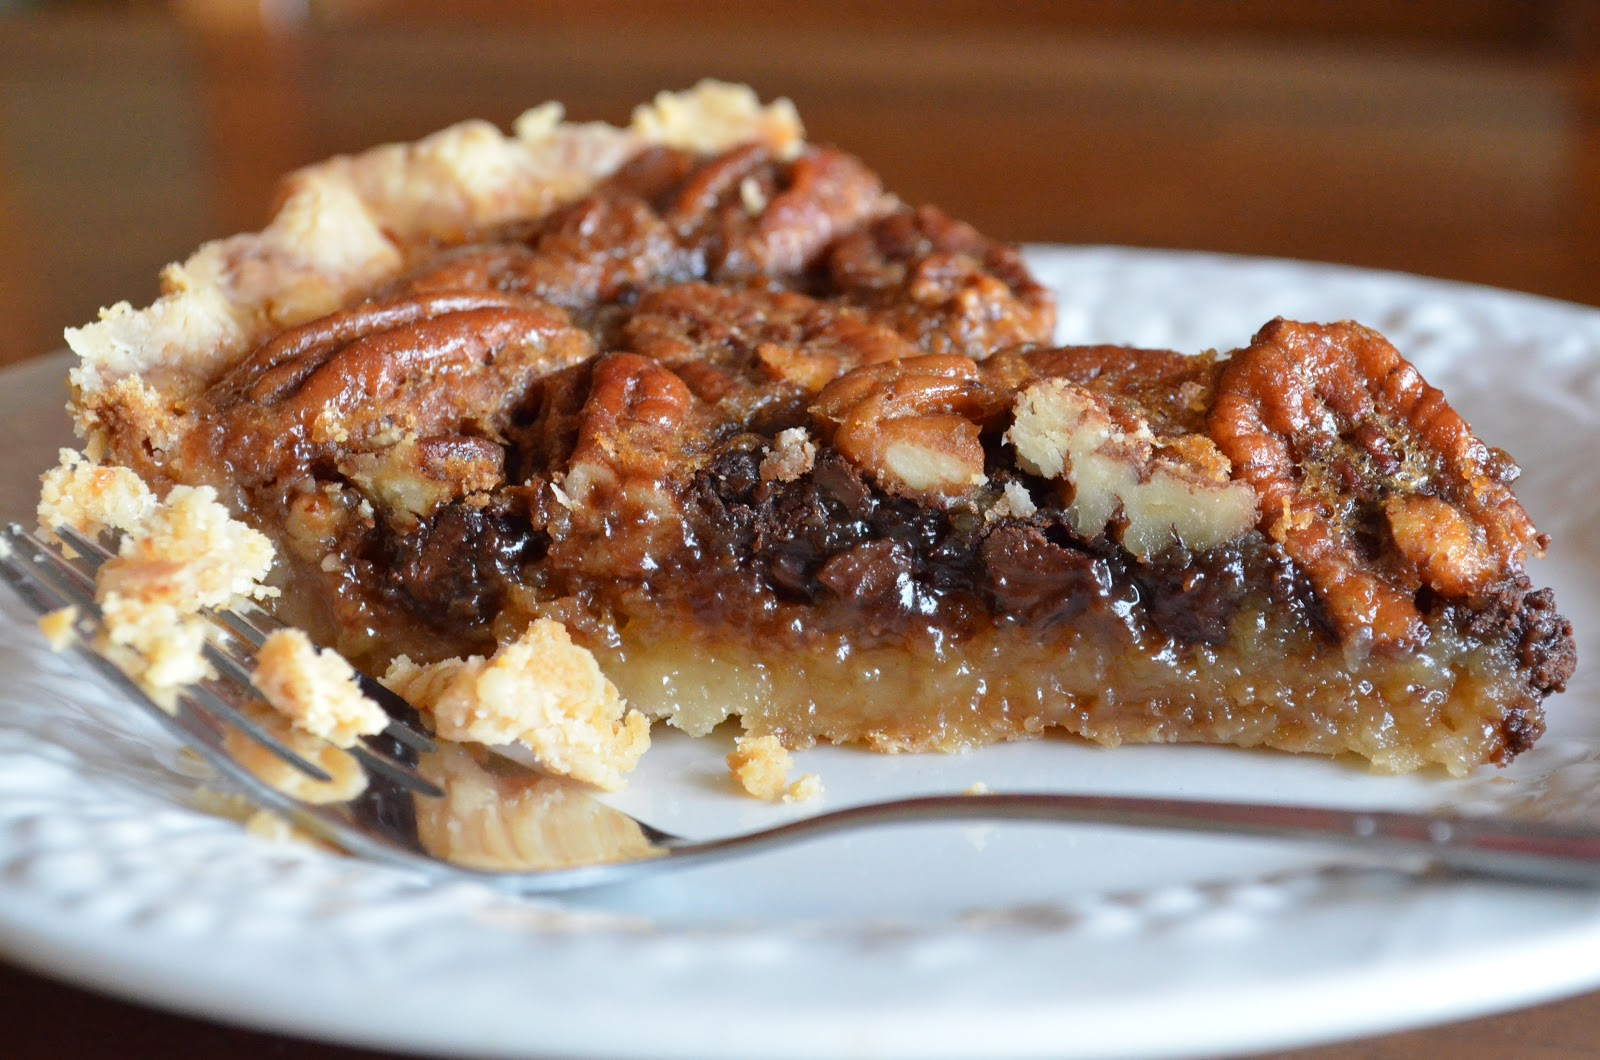 Pie on Sunday: Turning 7, and Chocolate Chip Pecan Pie